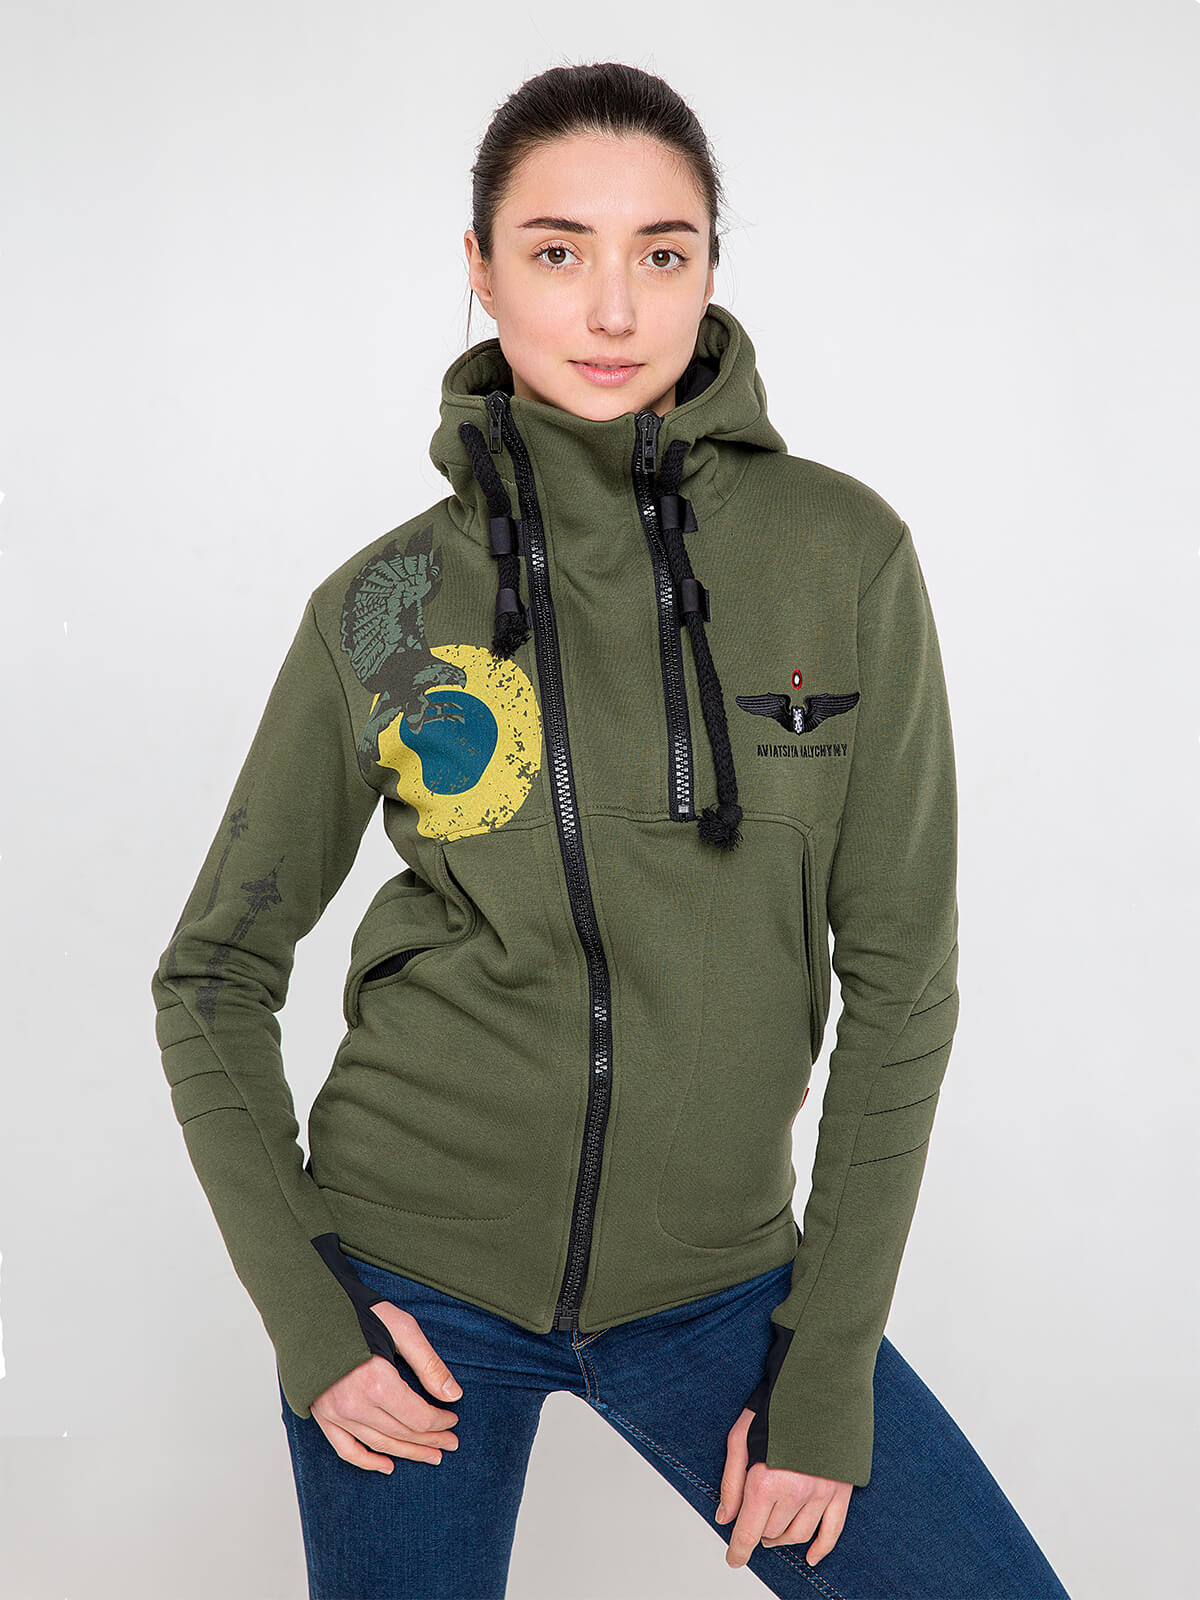 Women's Hoodie Ukrainian Falcons. Color khaki. Three-cord thread fabric: 77% cotton, 23% polyester.